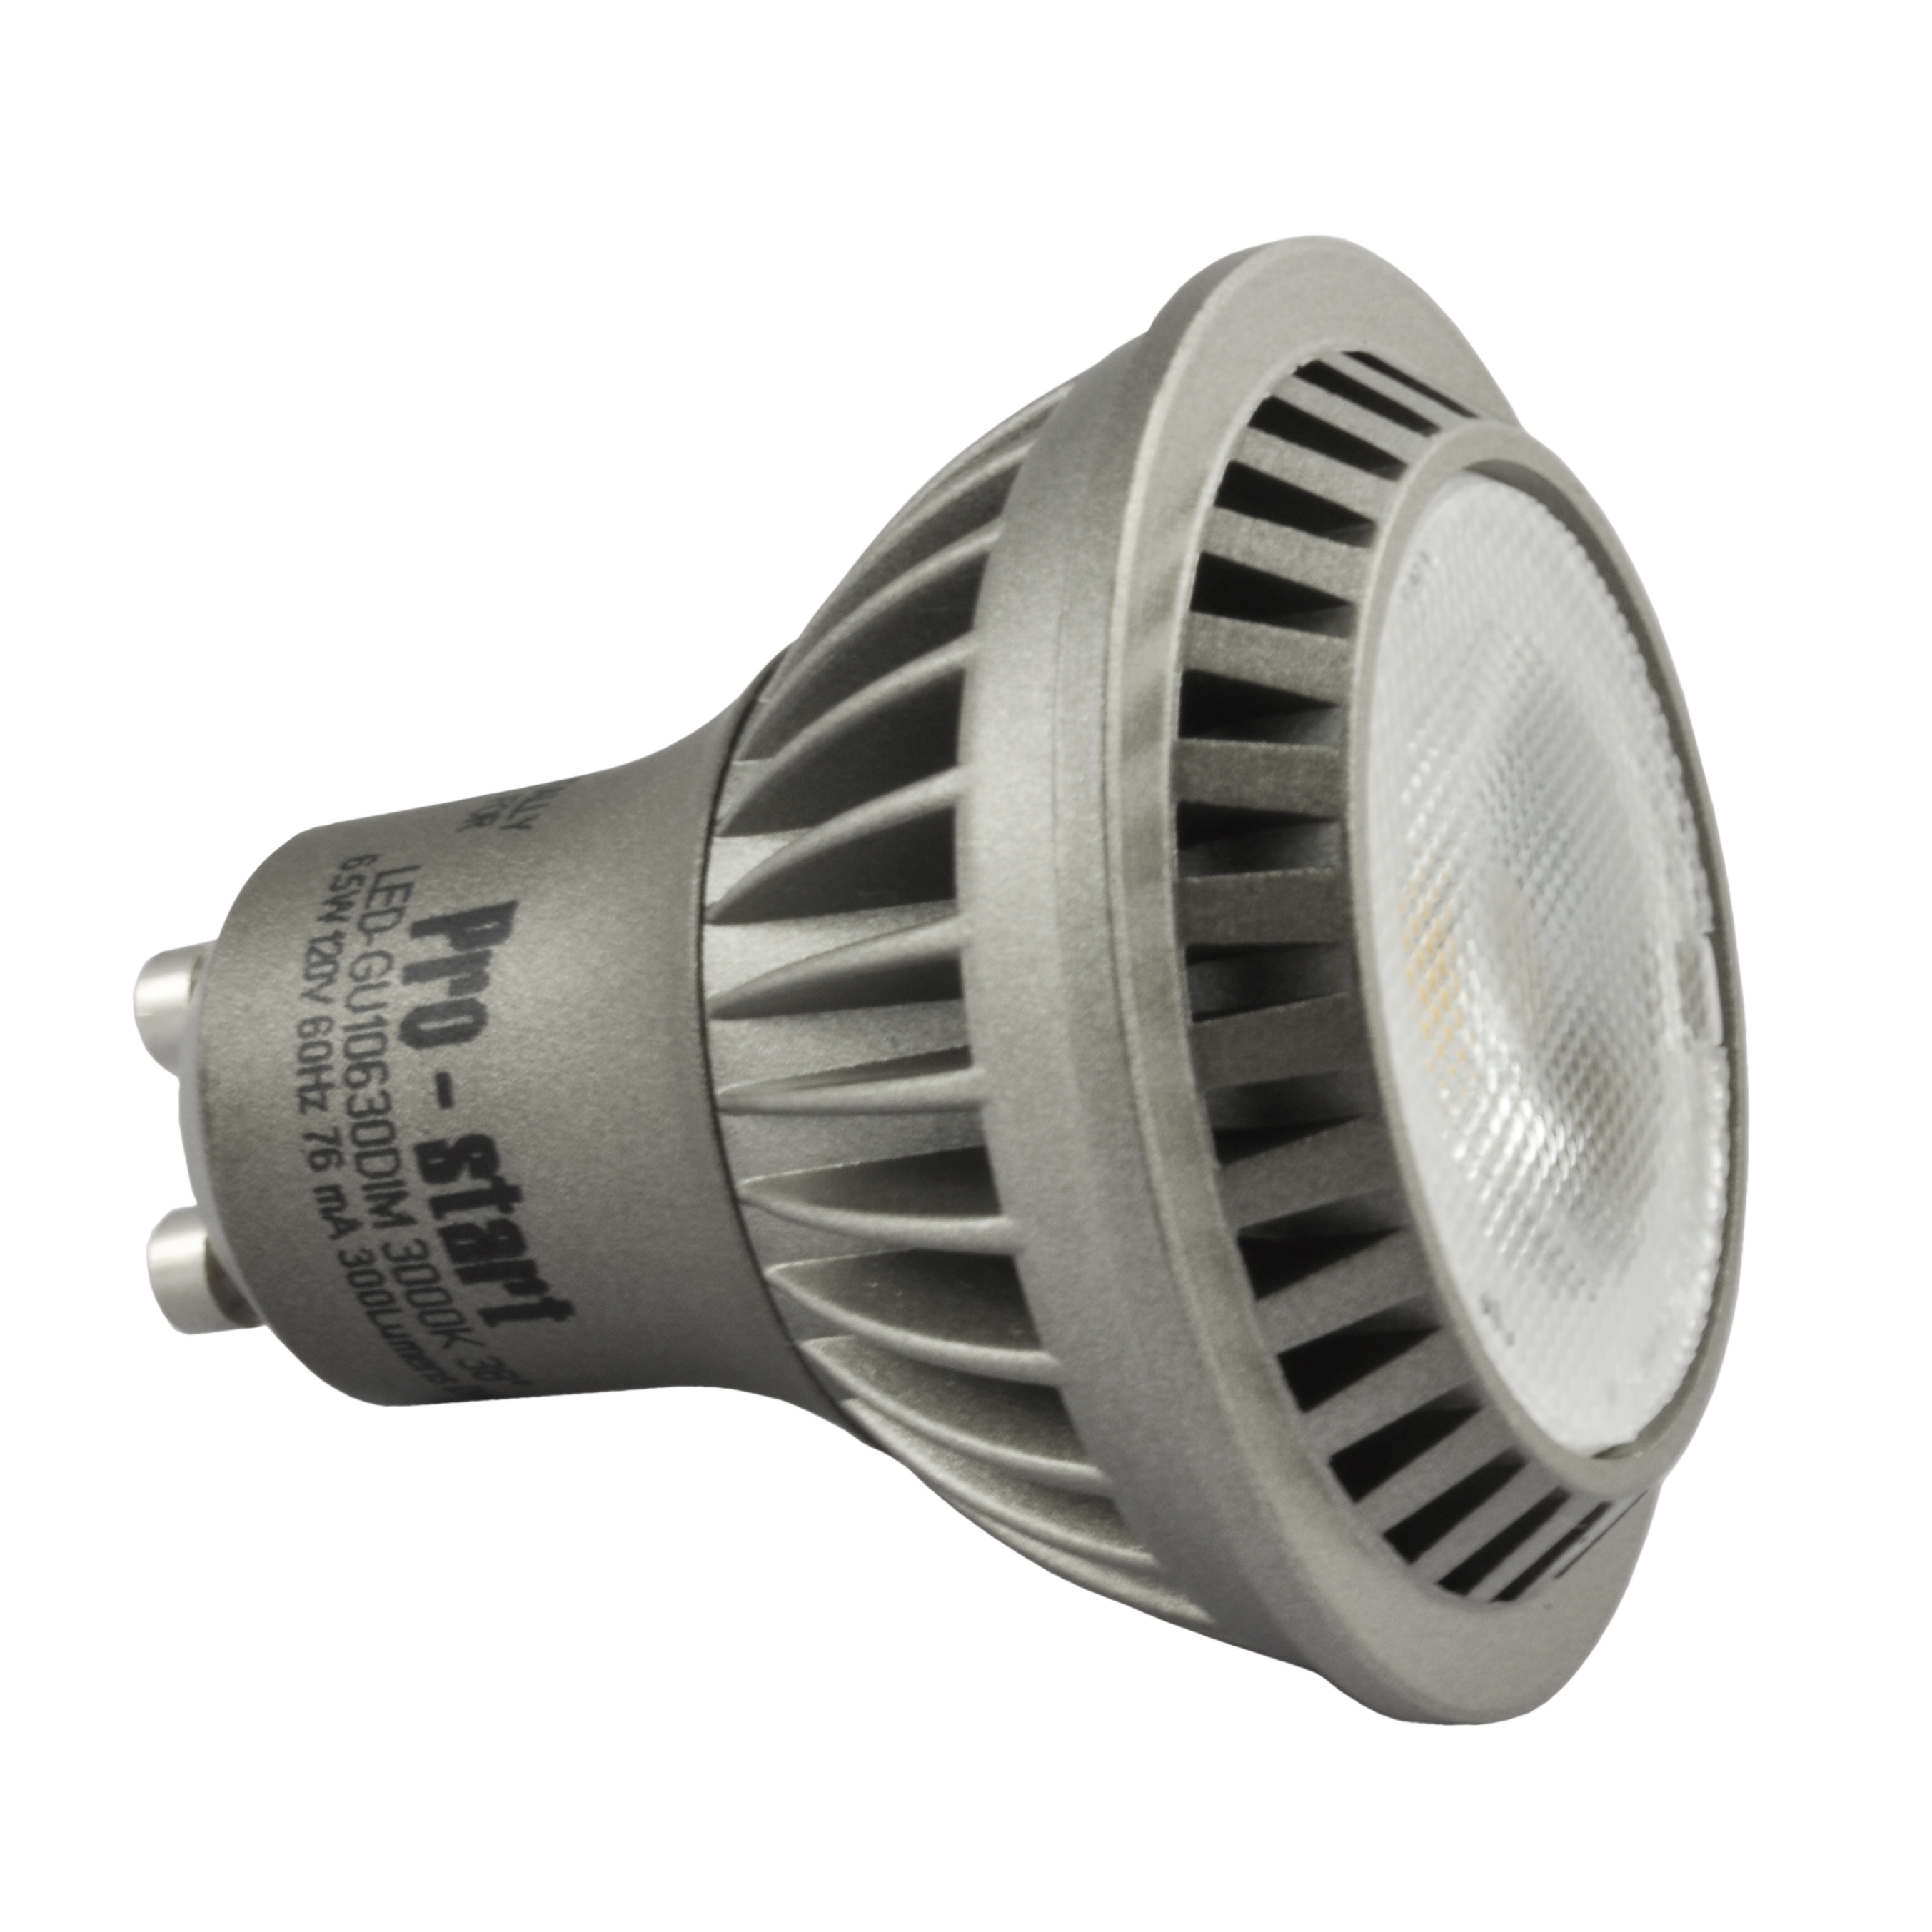 New Led Mr16 Lamps 6 5 Watt Dimmable 3000k Warm White Gx5 3 And Gu10 Base Available